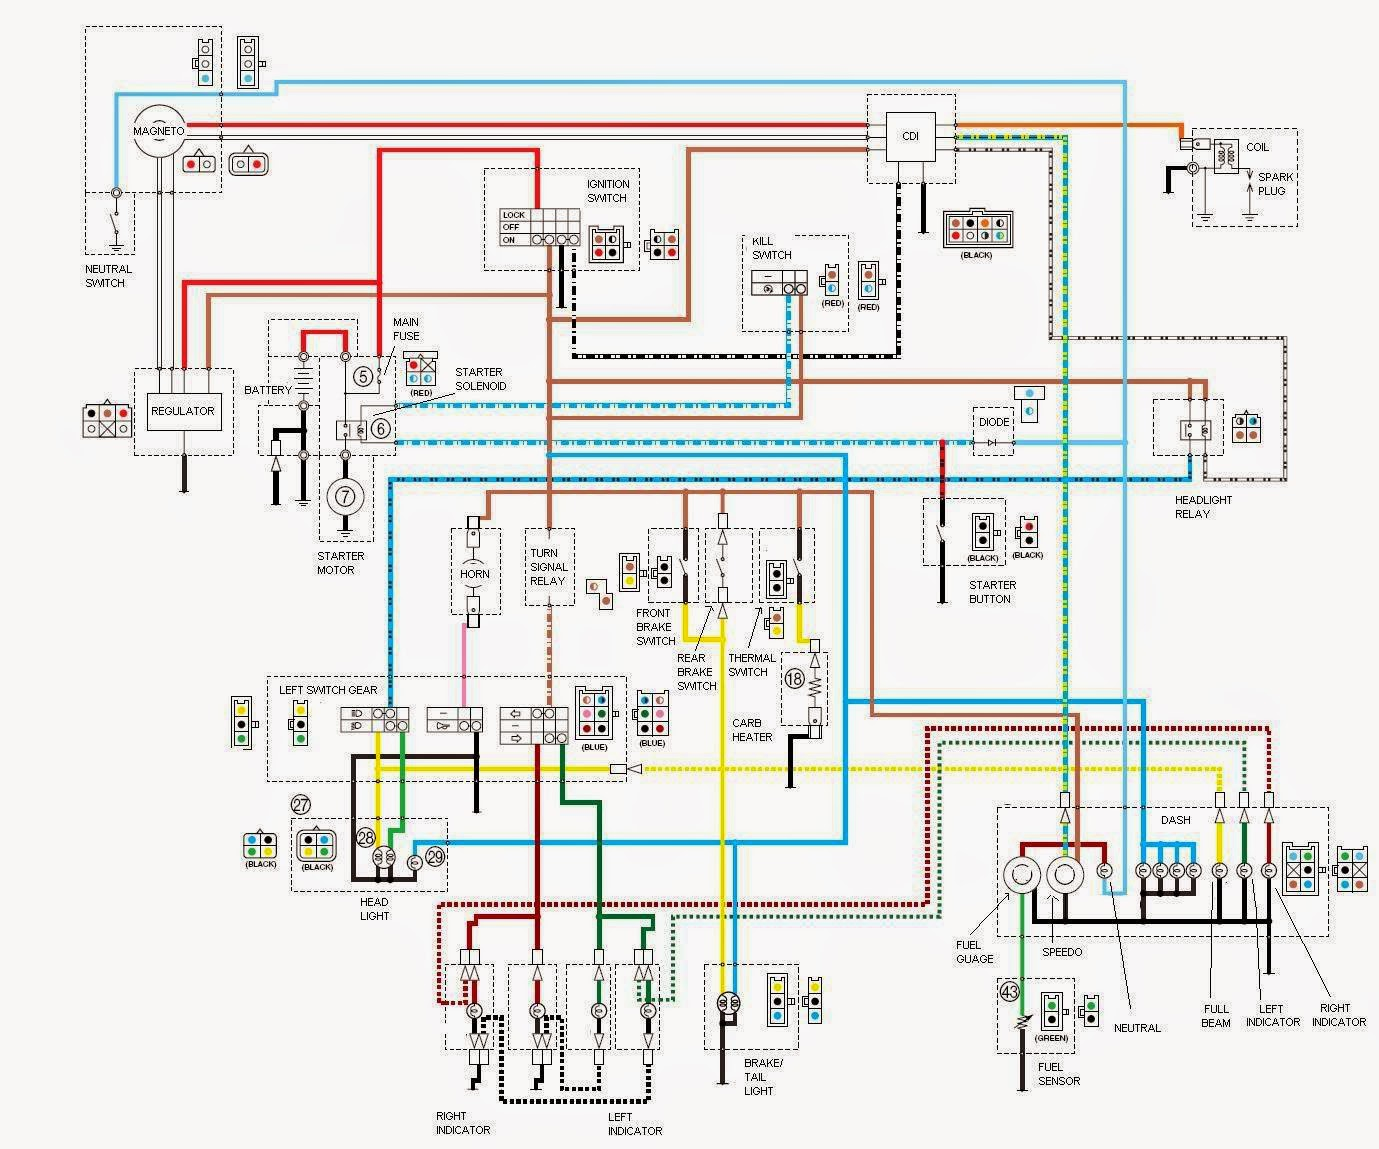 Wiring diagram vario 150 allison transmission 3000 and 4000 wiring wiring diagram vario 150 allison transmission 3000 and 4000 wiring diagram inspirational wiring diagram vauxhall viva archives joescablecarsc1st ccuart Choice Image